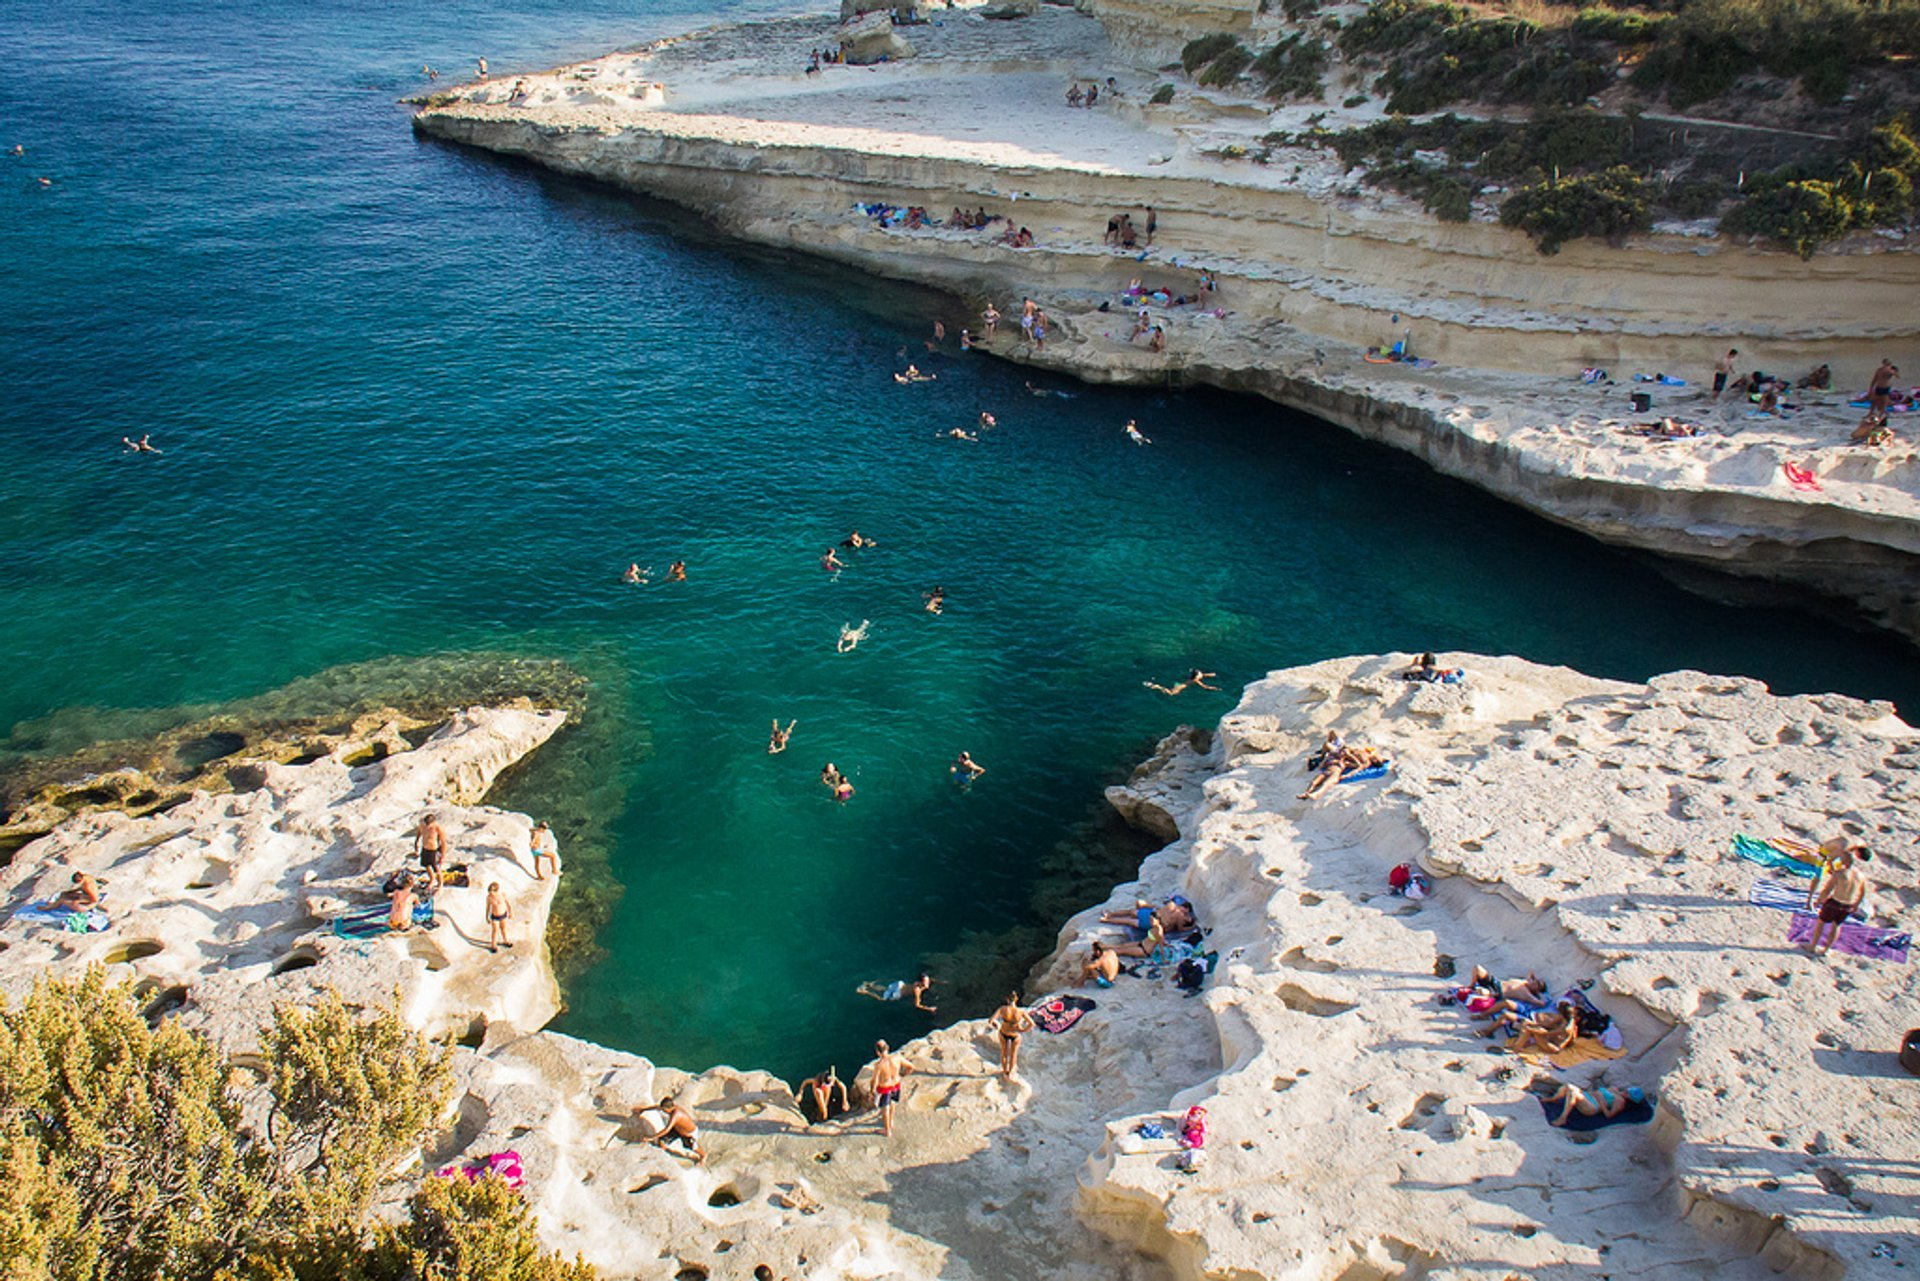 Swimming at Saint Peter's Pool in Malta 2020 - Best Time